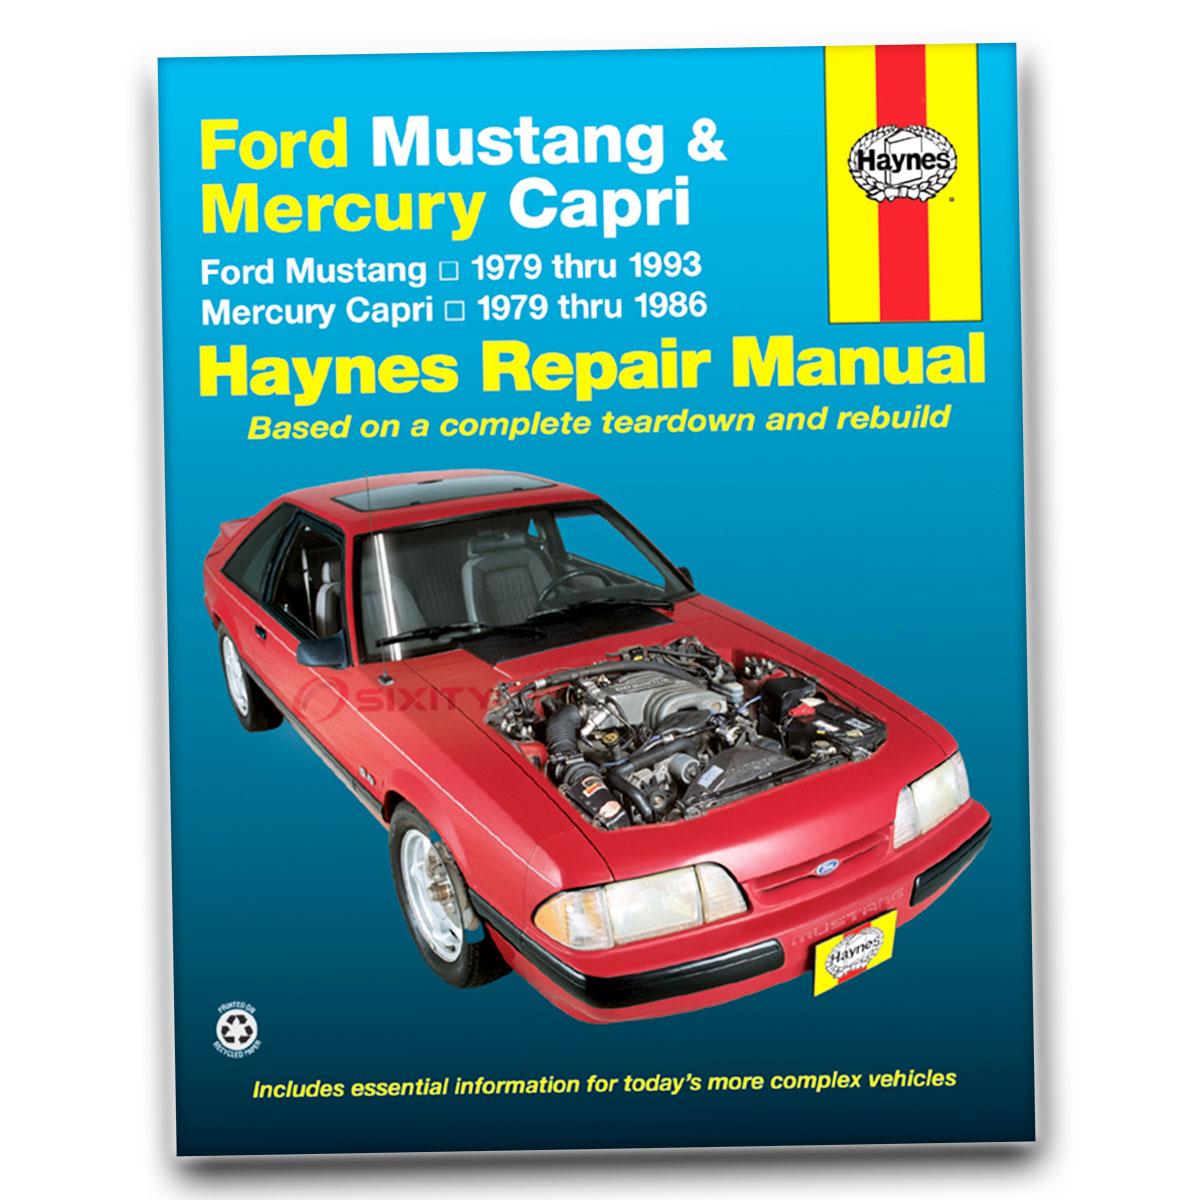 mustang service manual daily instruction manual guides u2022 rh testingwordpress co Owners Manual for Ford Mustang 99 ford mustang repair manual